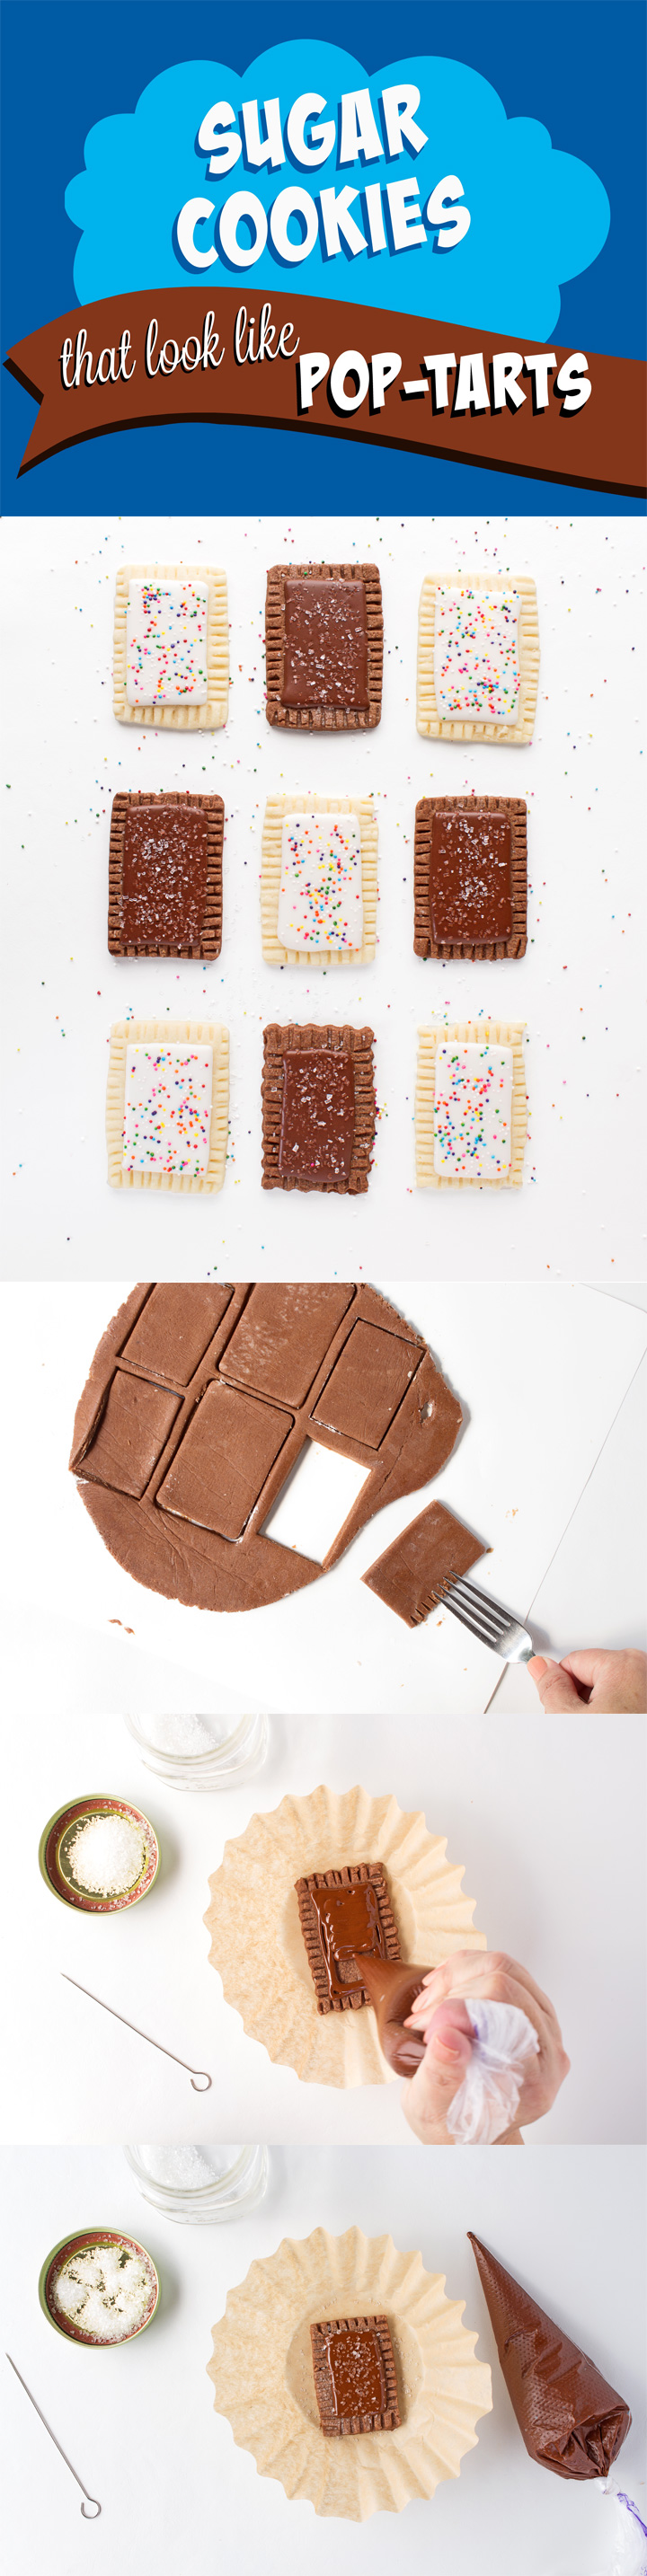 How to Make a Sugar Cookie that looks like a Pop-Tart Tutorial with a Video   The Bearfoot Baker